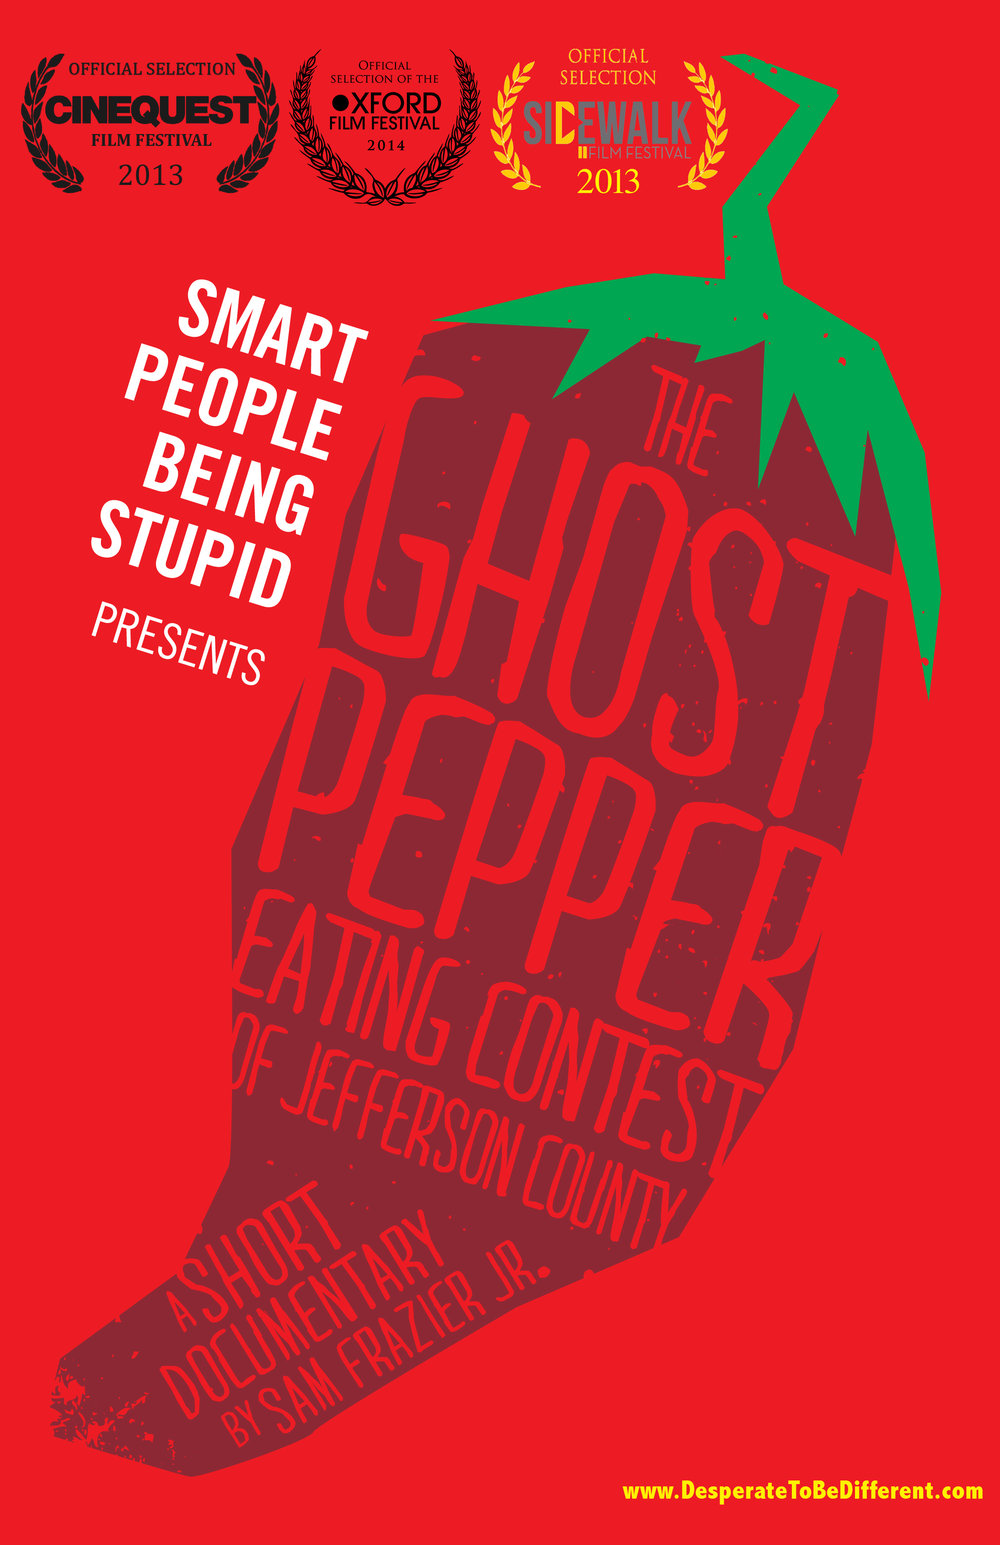 GhostPepperPoster11x17-v2-high-res.jpg